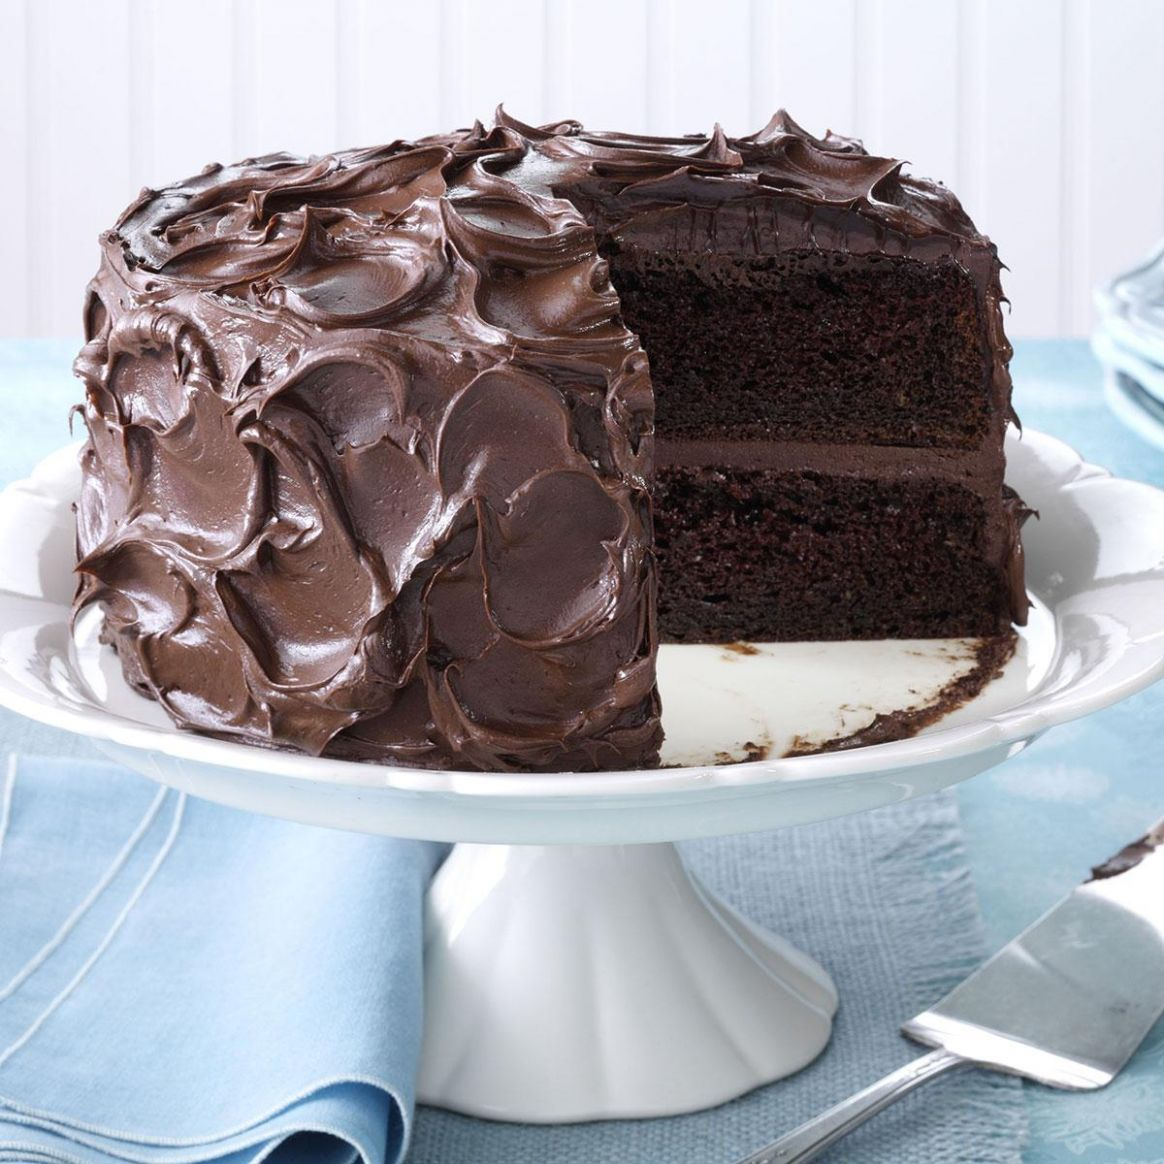 Come-Home-to-Mama Chocolate Cake - Recipes Using Chocolate Cake Mix